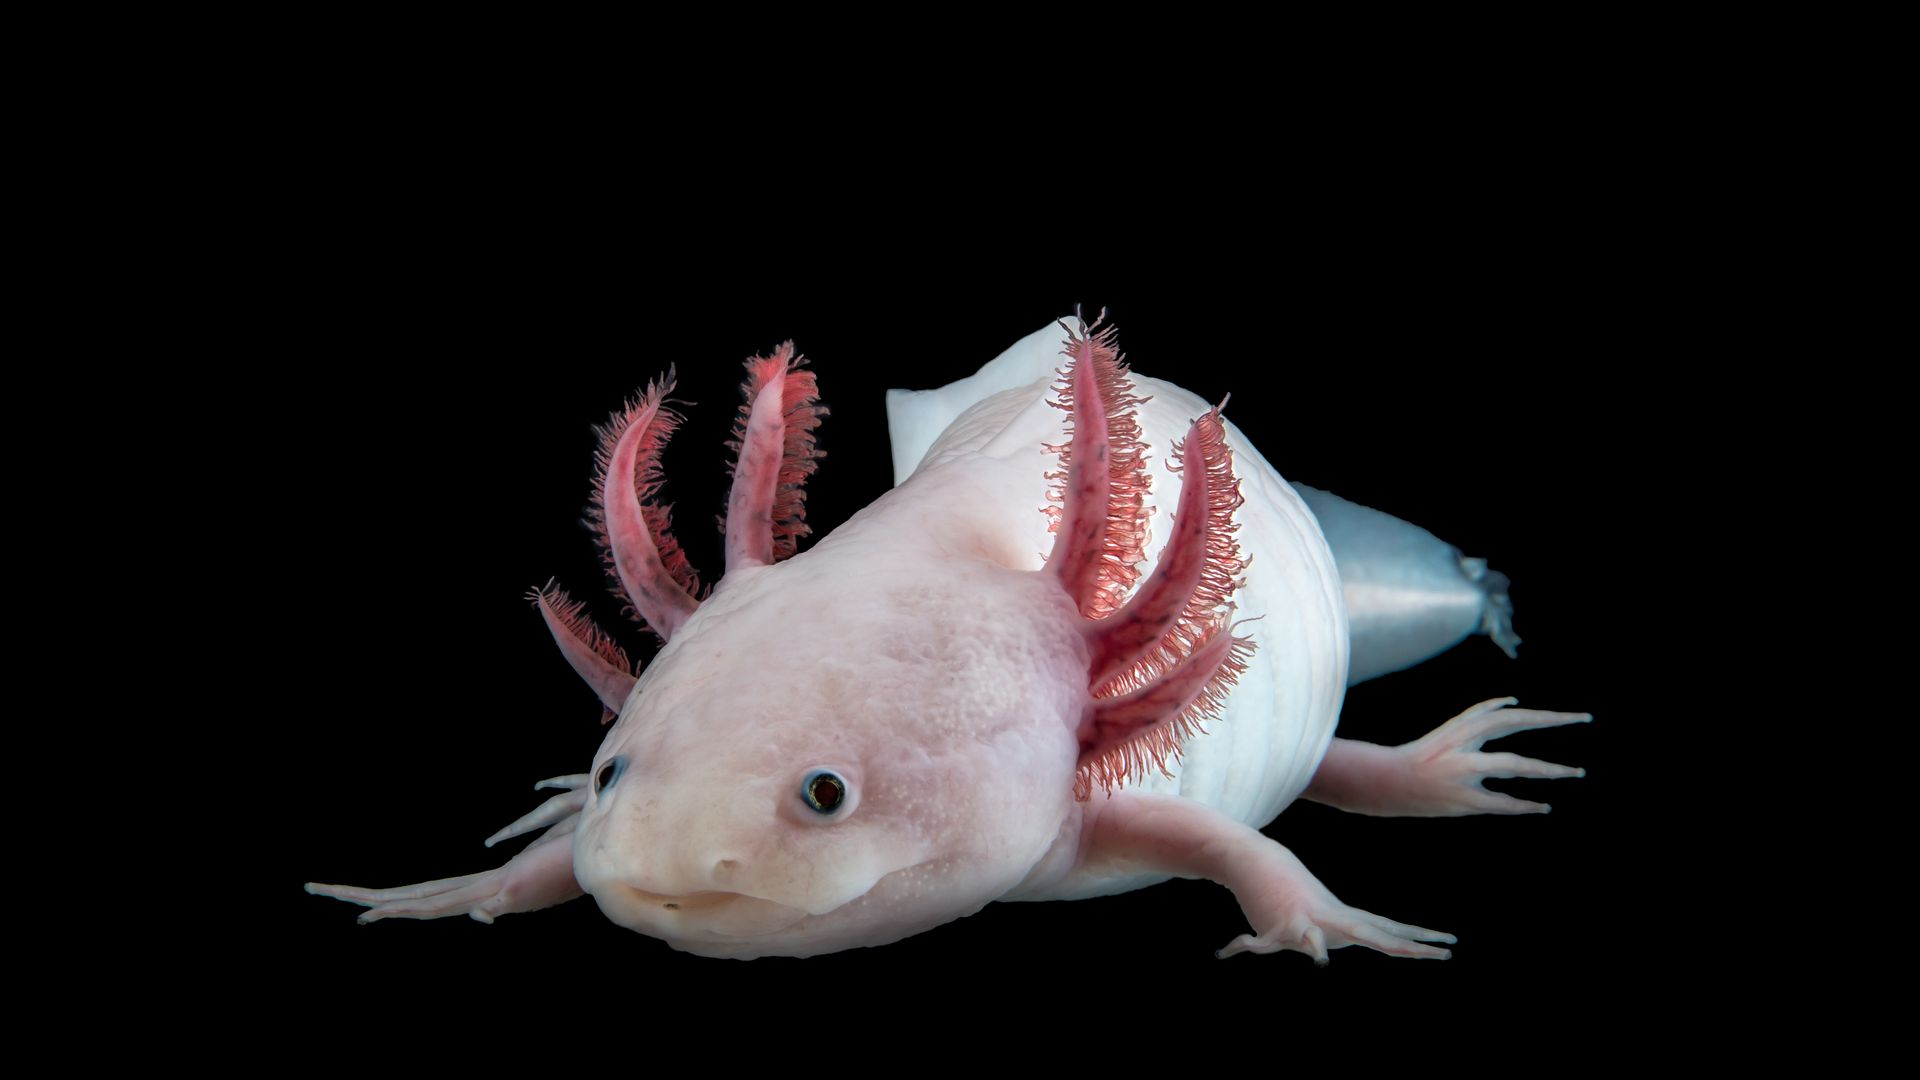 The Mexican axolotl Ambystoma mexicanum is a model organism for regeneration research.